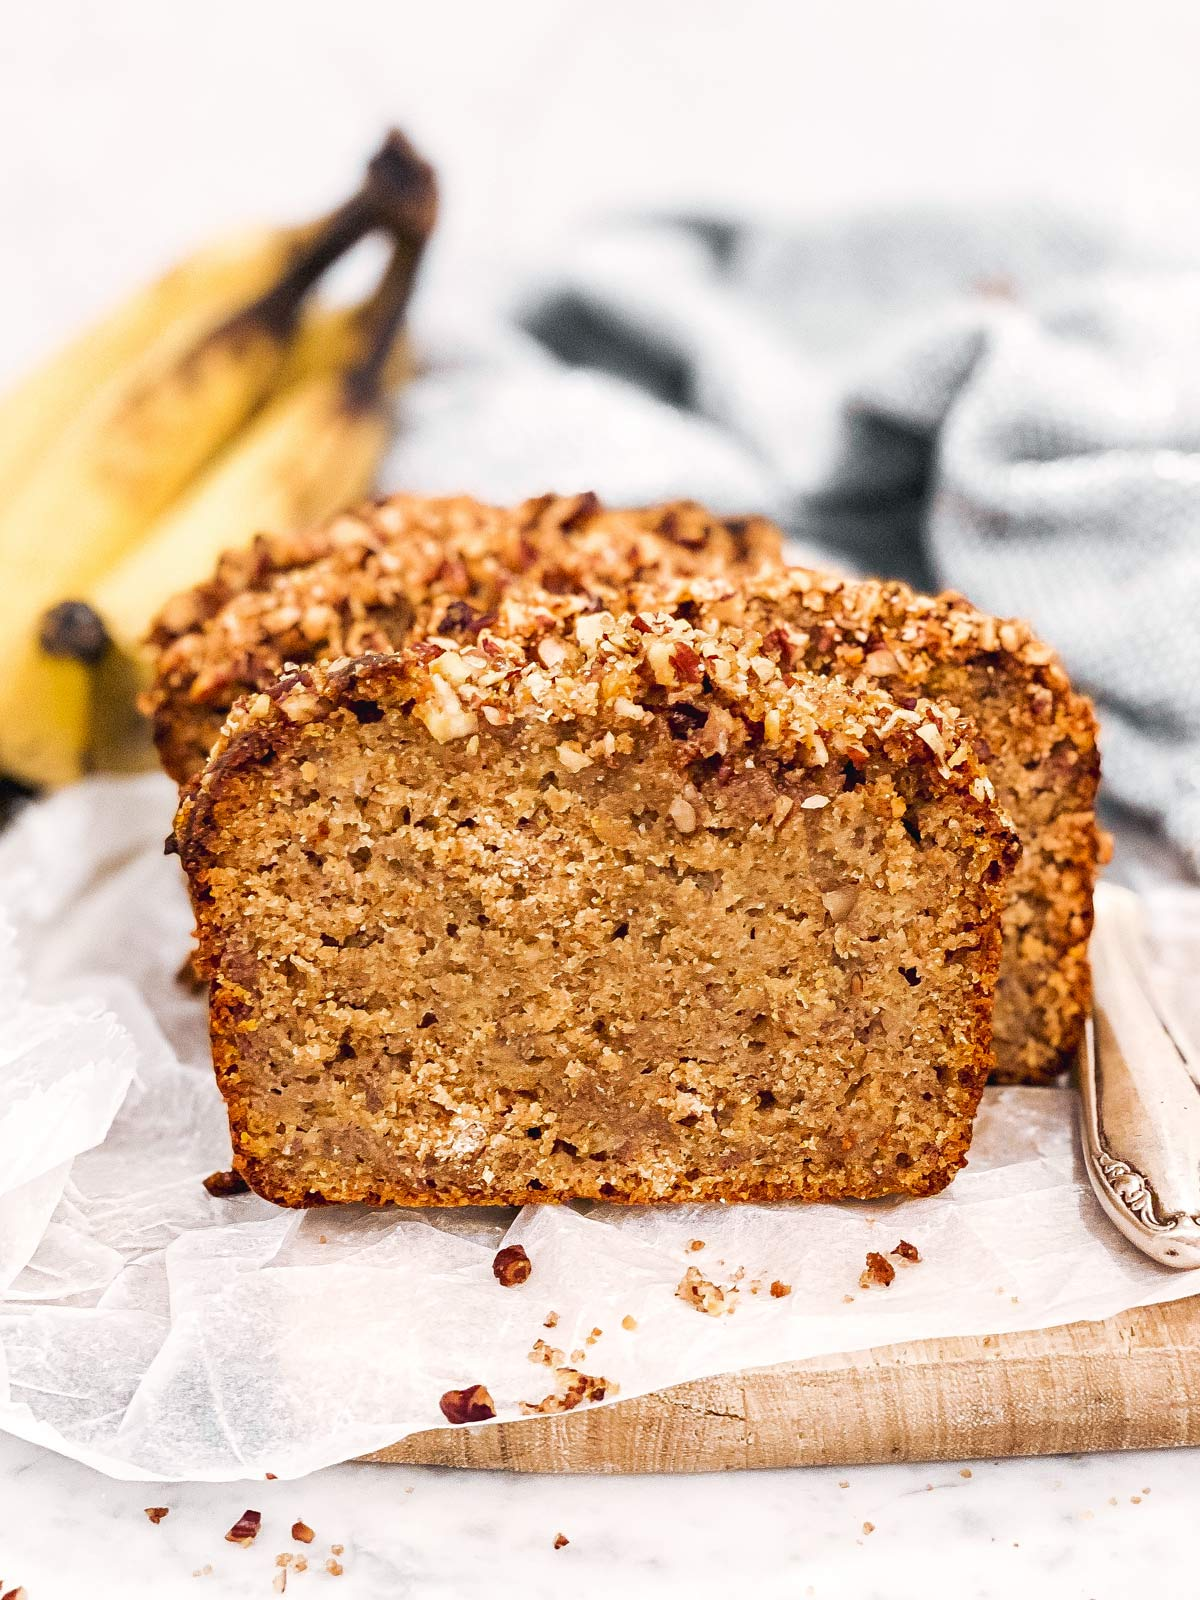 frontal view of sliced banana bread in front of bunch of bananas